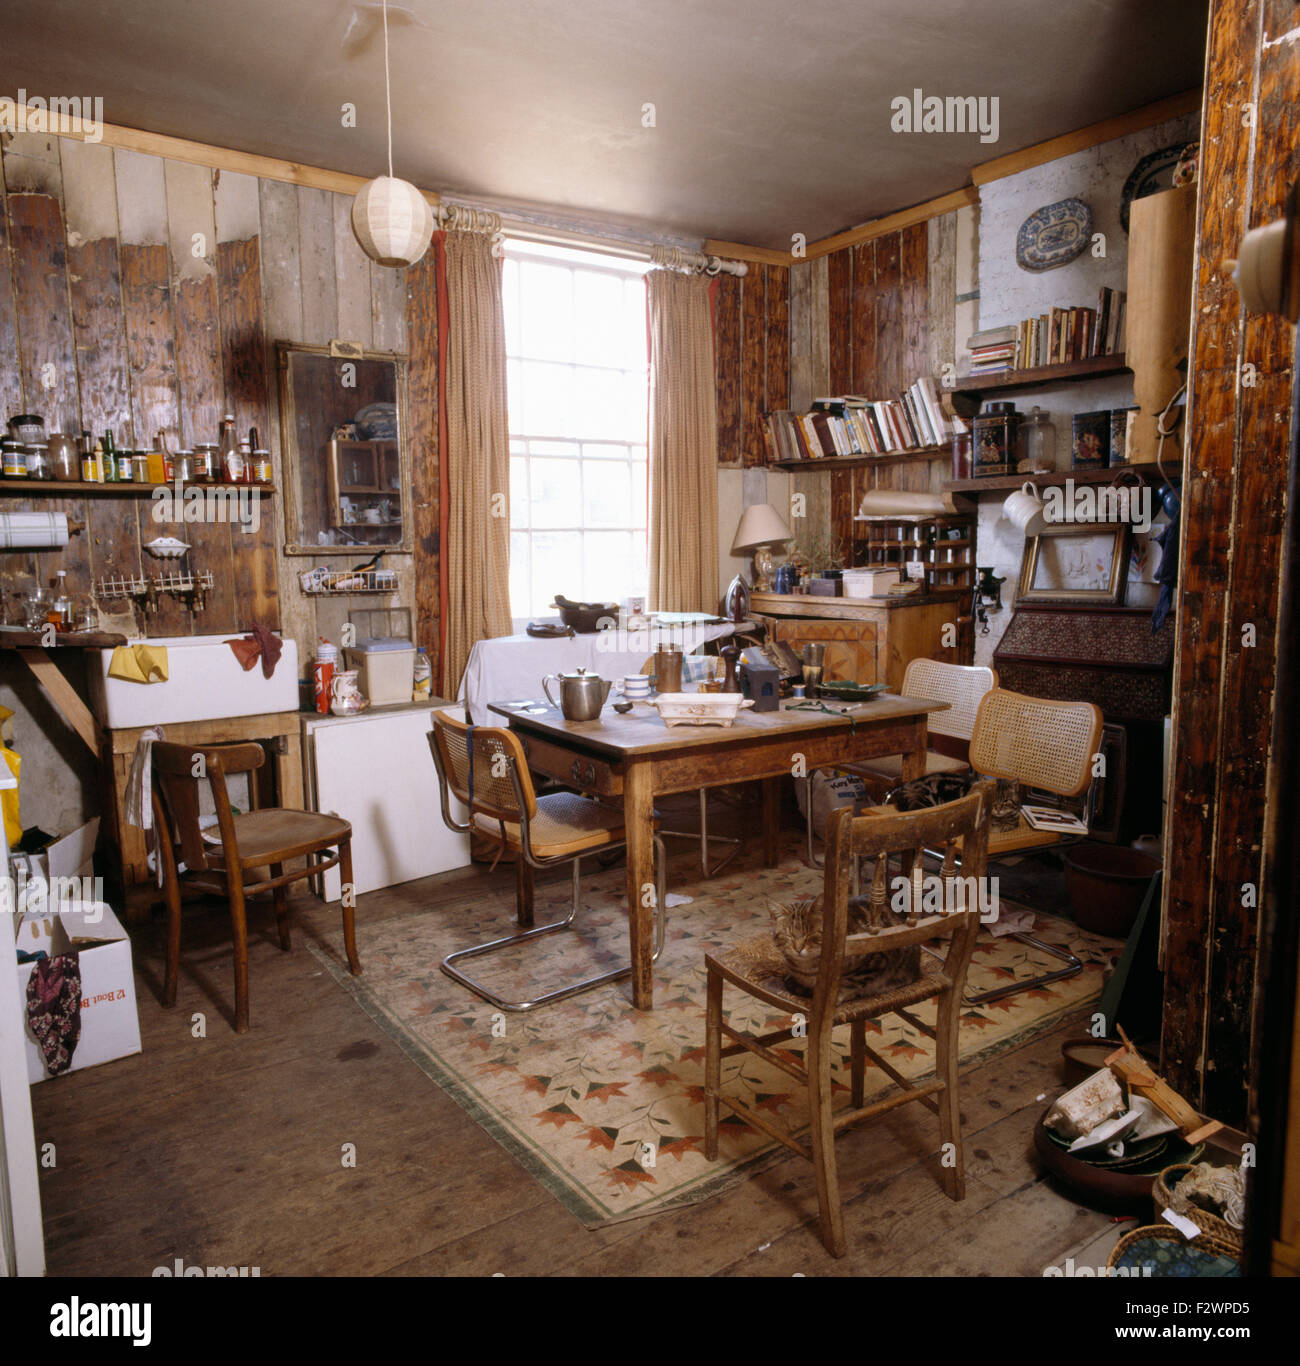 Seventies kitchen dining room before renovation - Stock Image